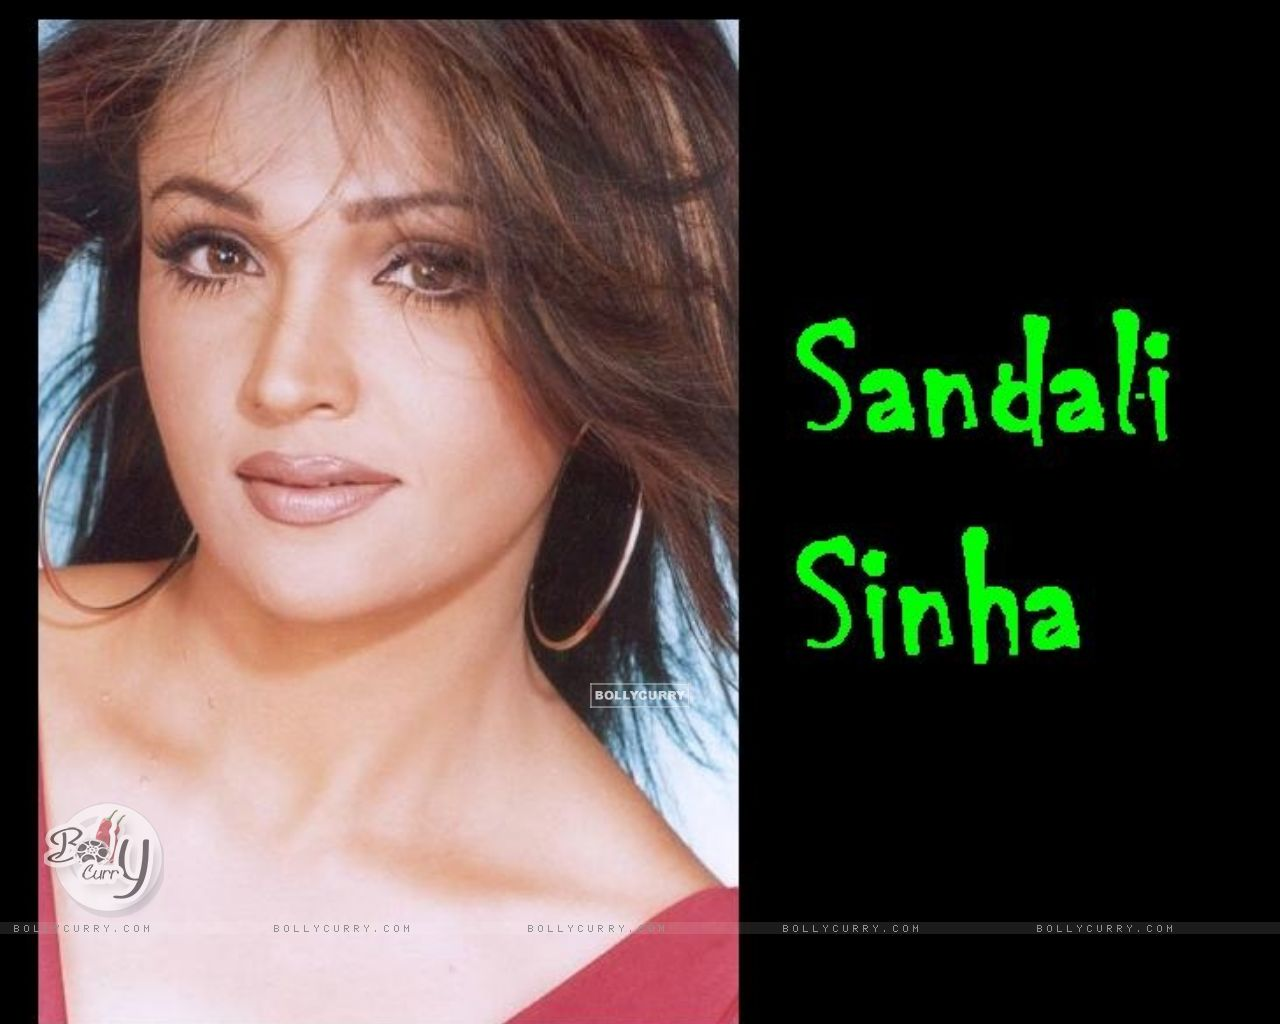 Sandali Sinha - Wallpaper